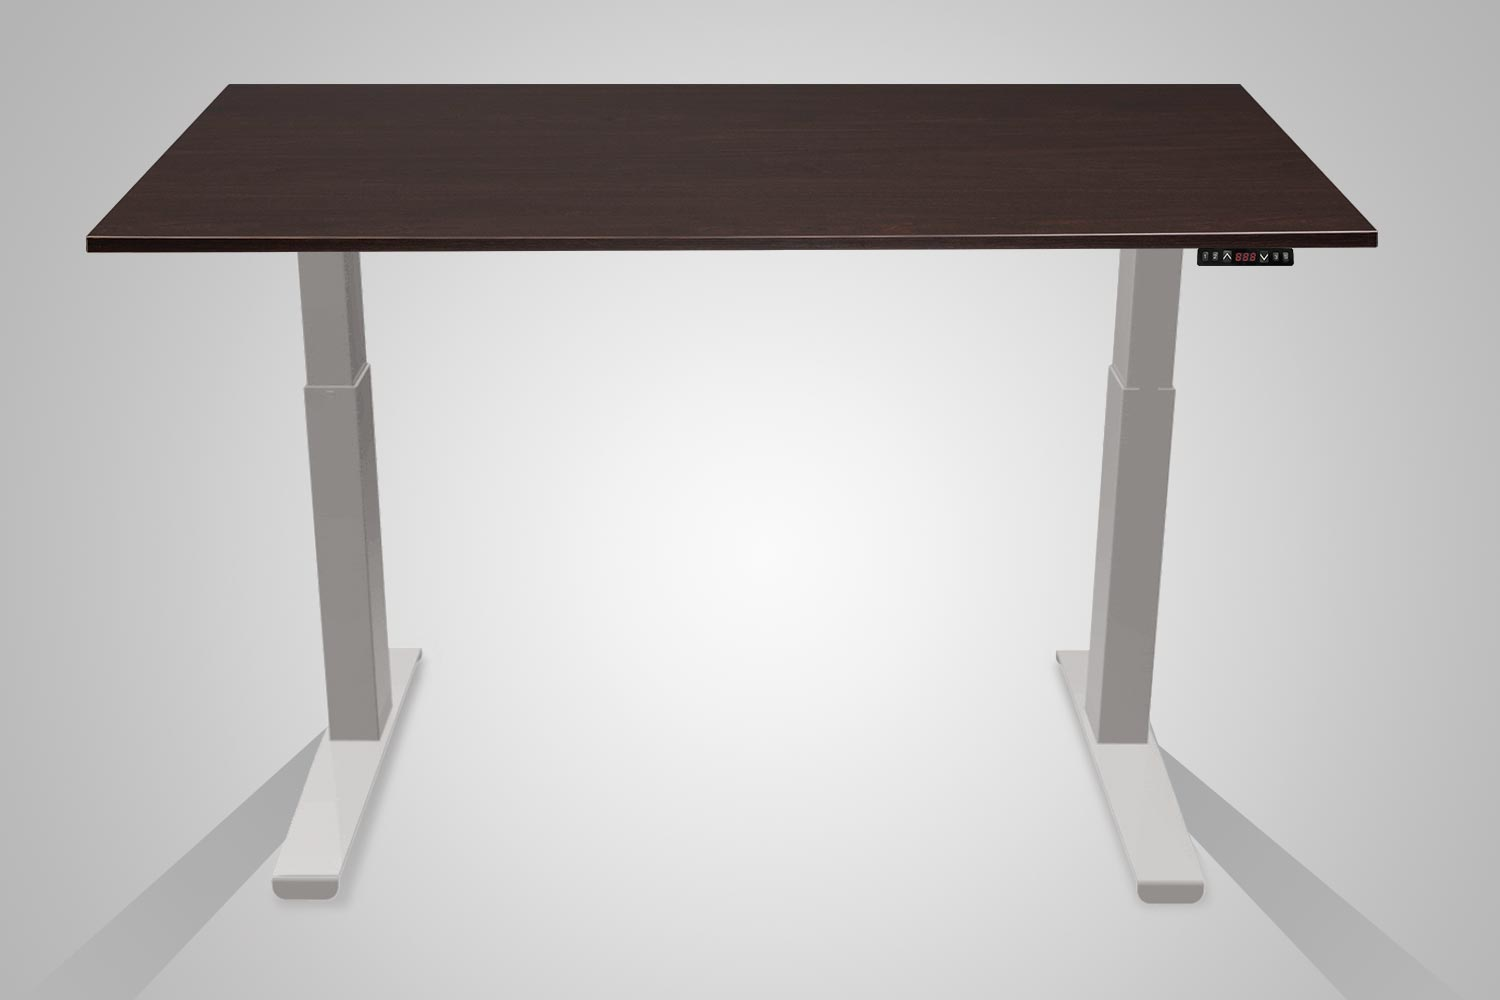 MultiTable Mod-E Pro Electric Height Adjustable Standing Desk